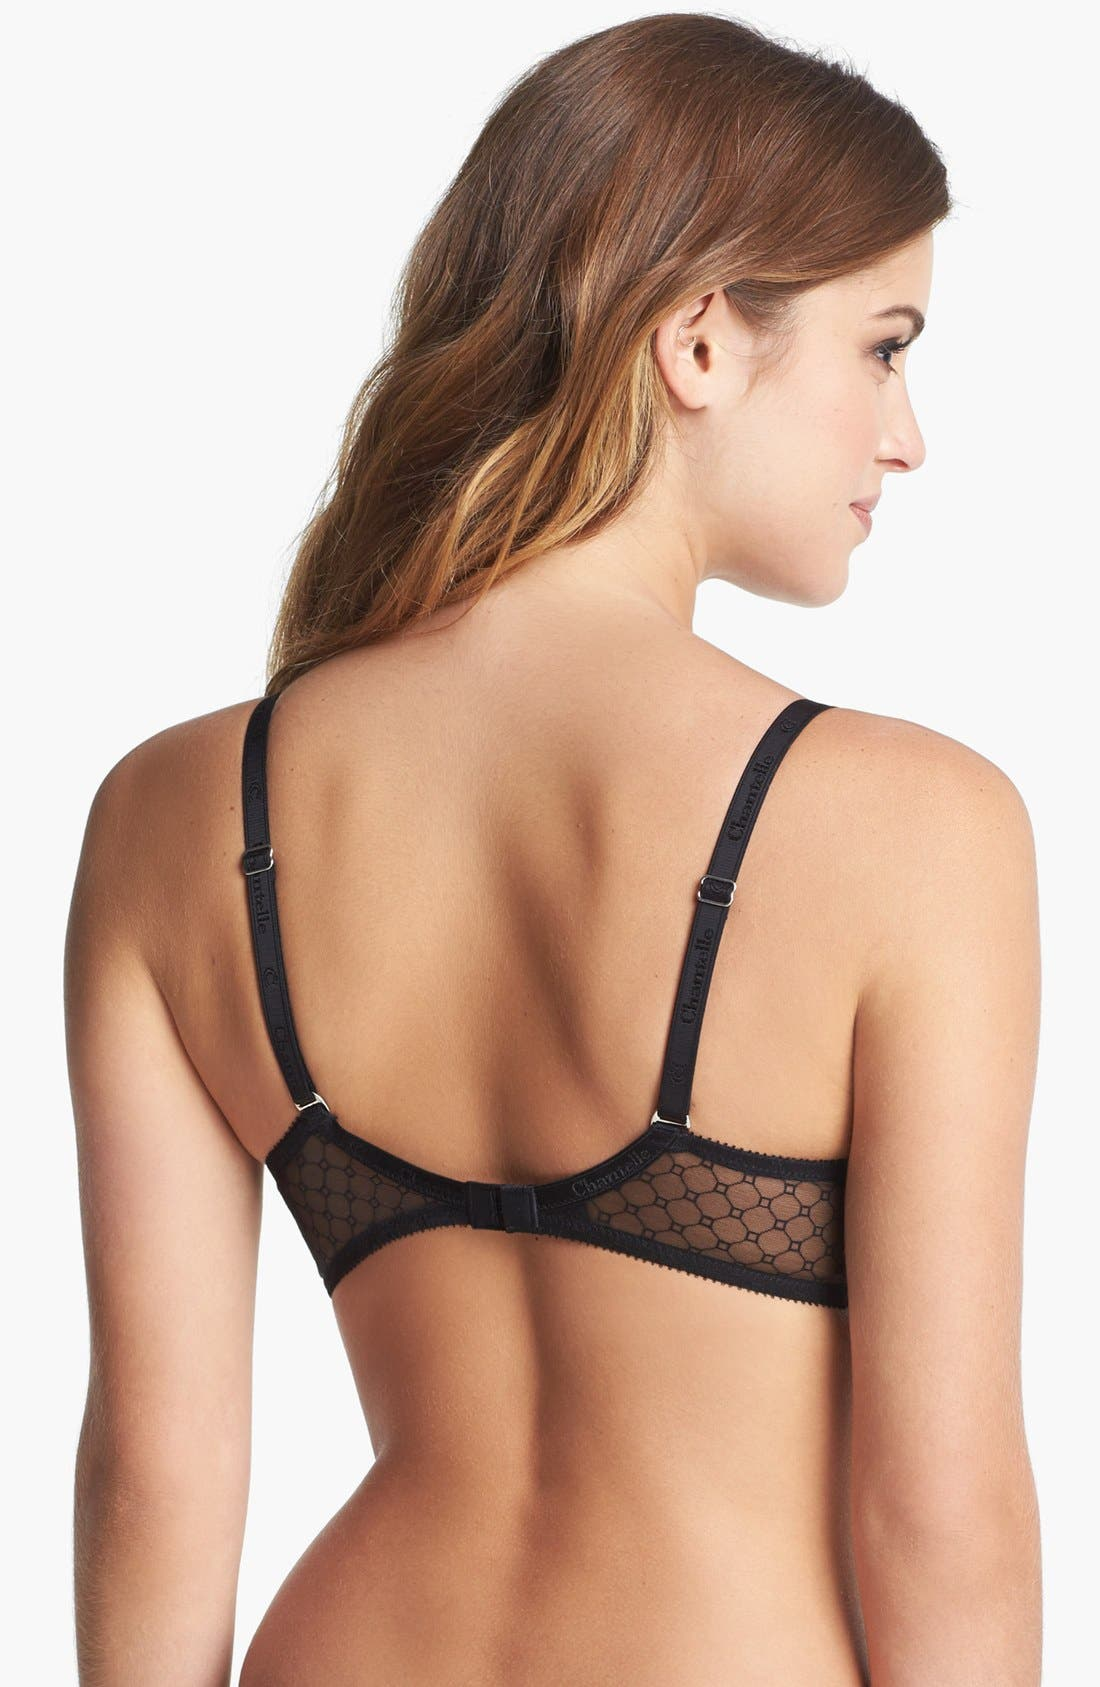 CHANTELLE INTIMATES,                             'C Chic Sexy' Underwire Push-Up Plunge Bra,                             Alternate thumbnail 2, color,                             001